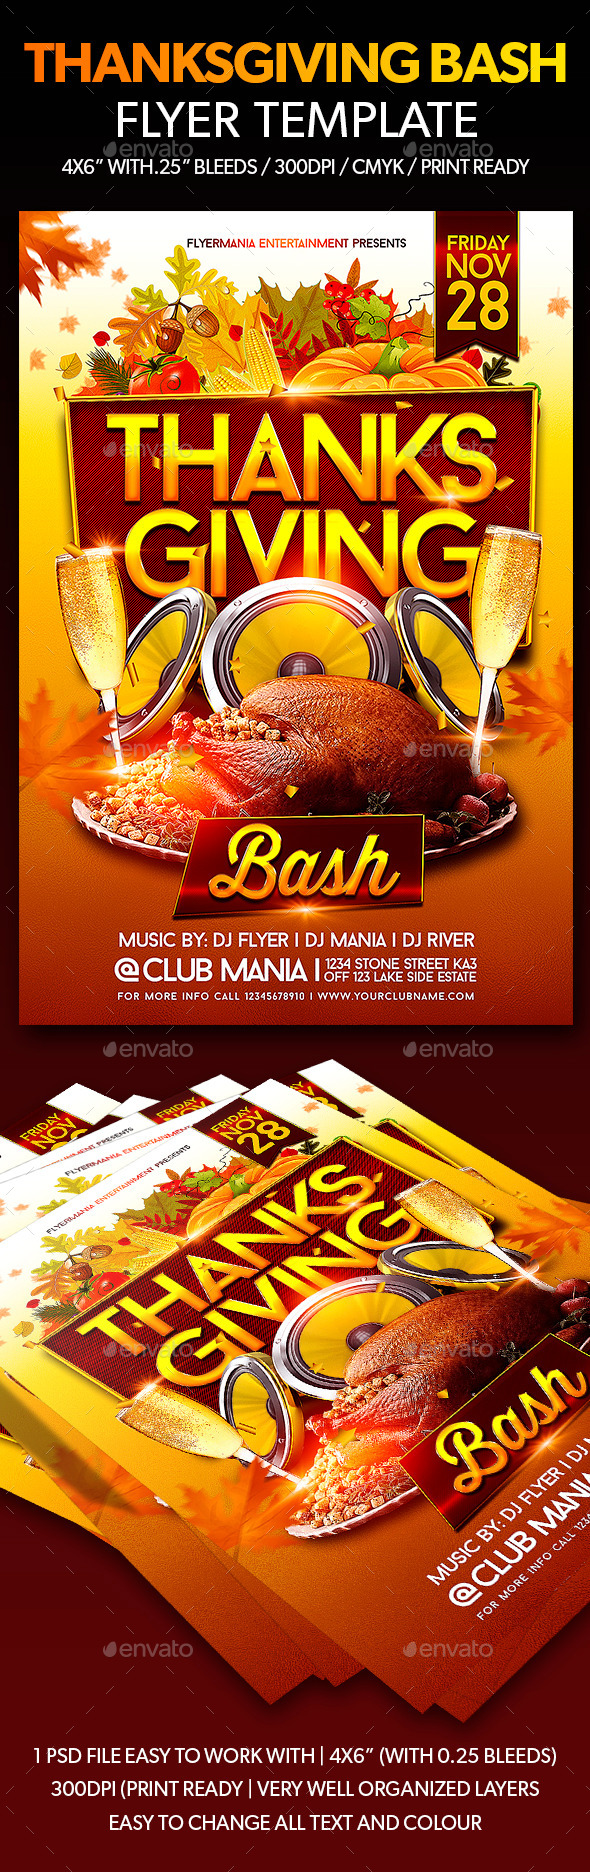 Thanksgiving Bash Flyer Template - Events Flyers